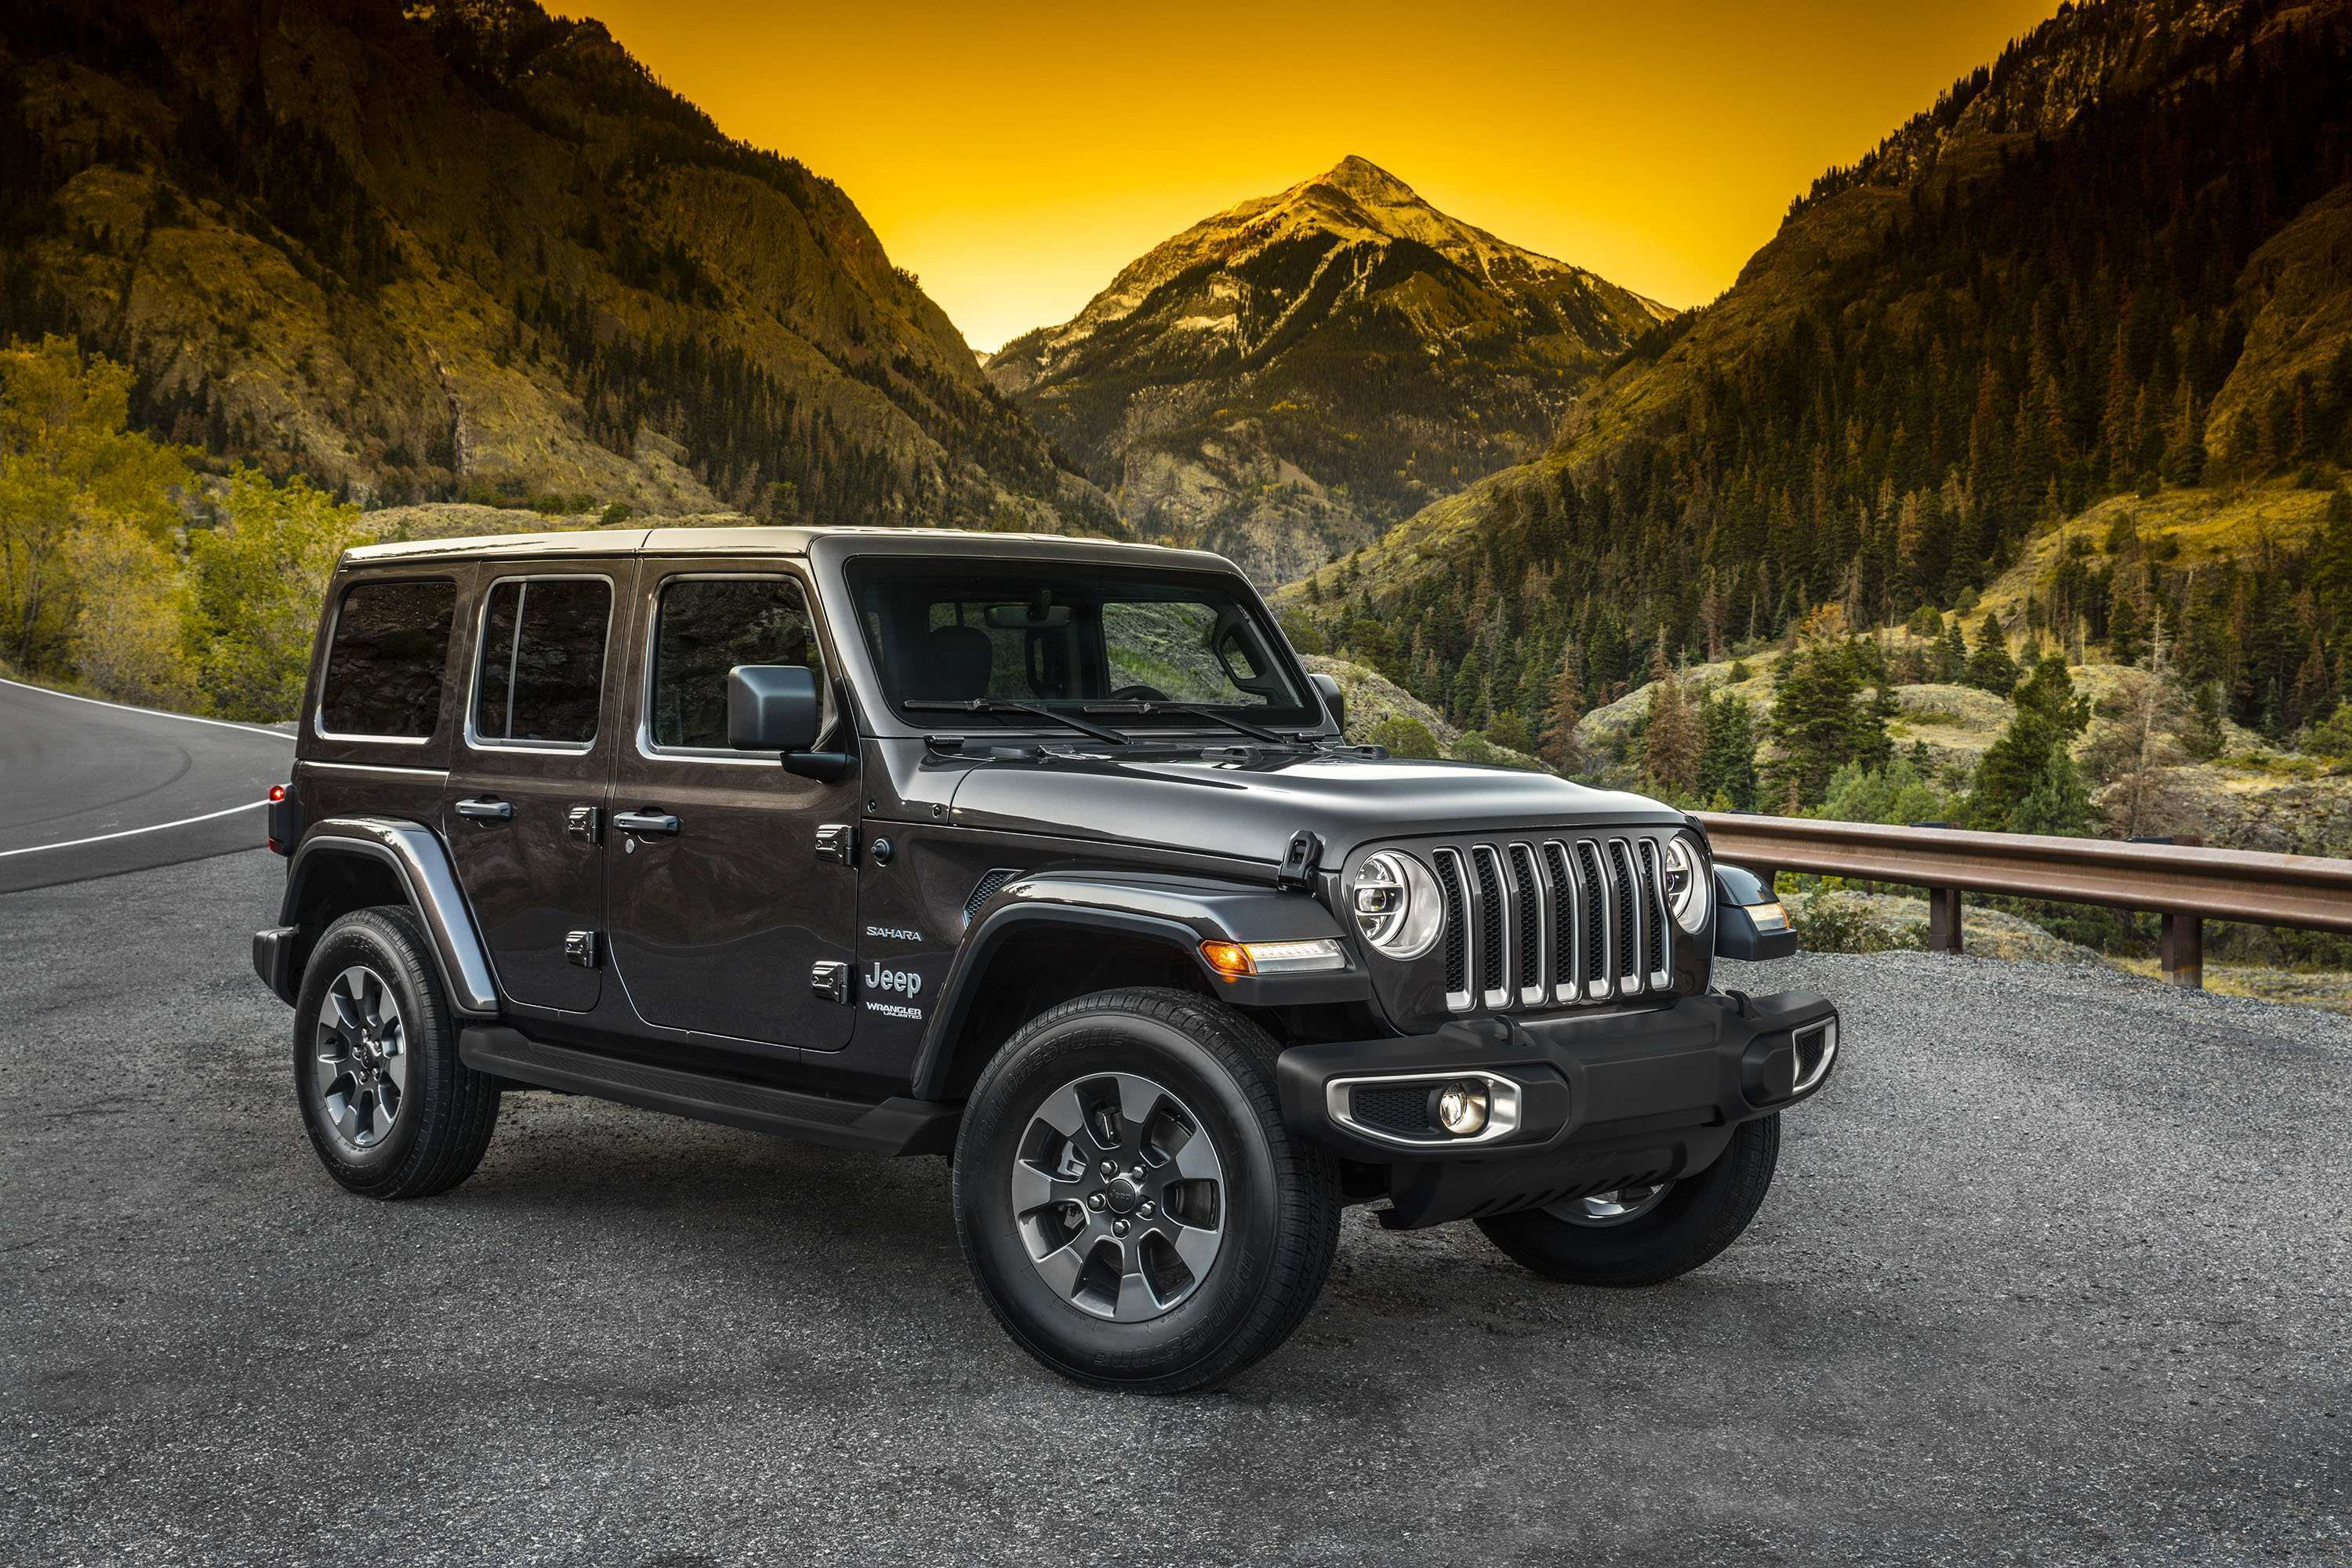 88 Great 2020 Jeep Wrangler Overview with 2020 Jeep Wrangler